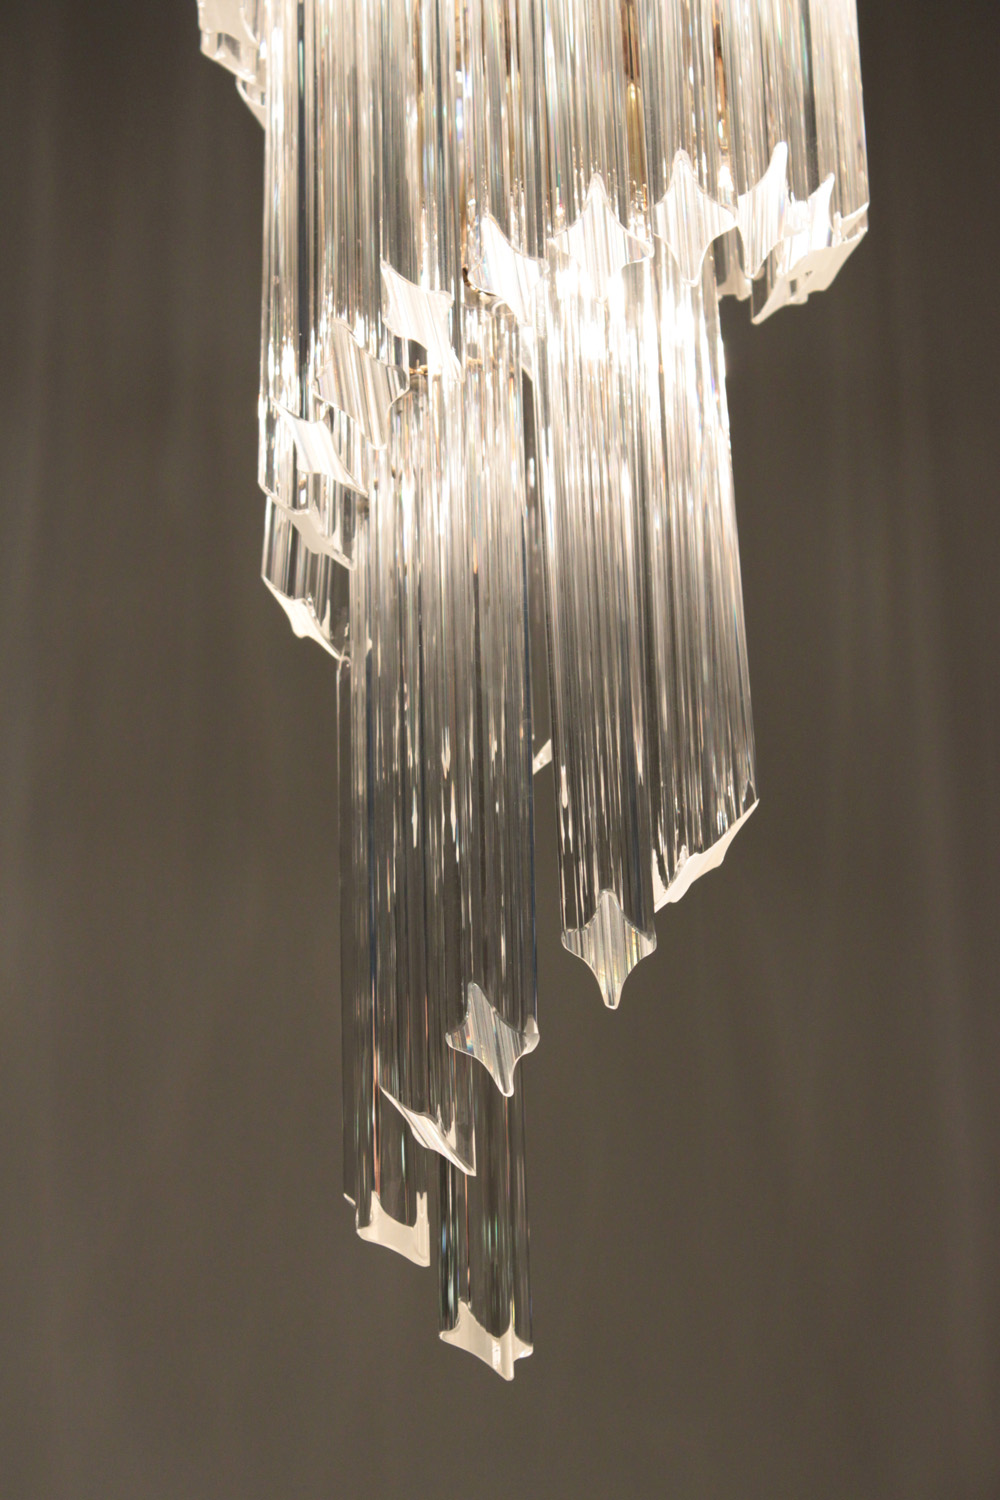 Venini 65 medium spiral glas rods chandelier lower hires.jpg